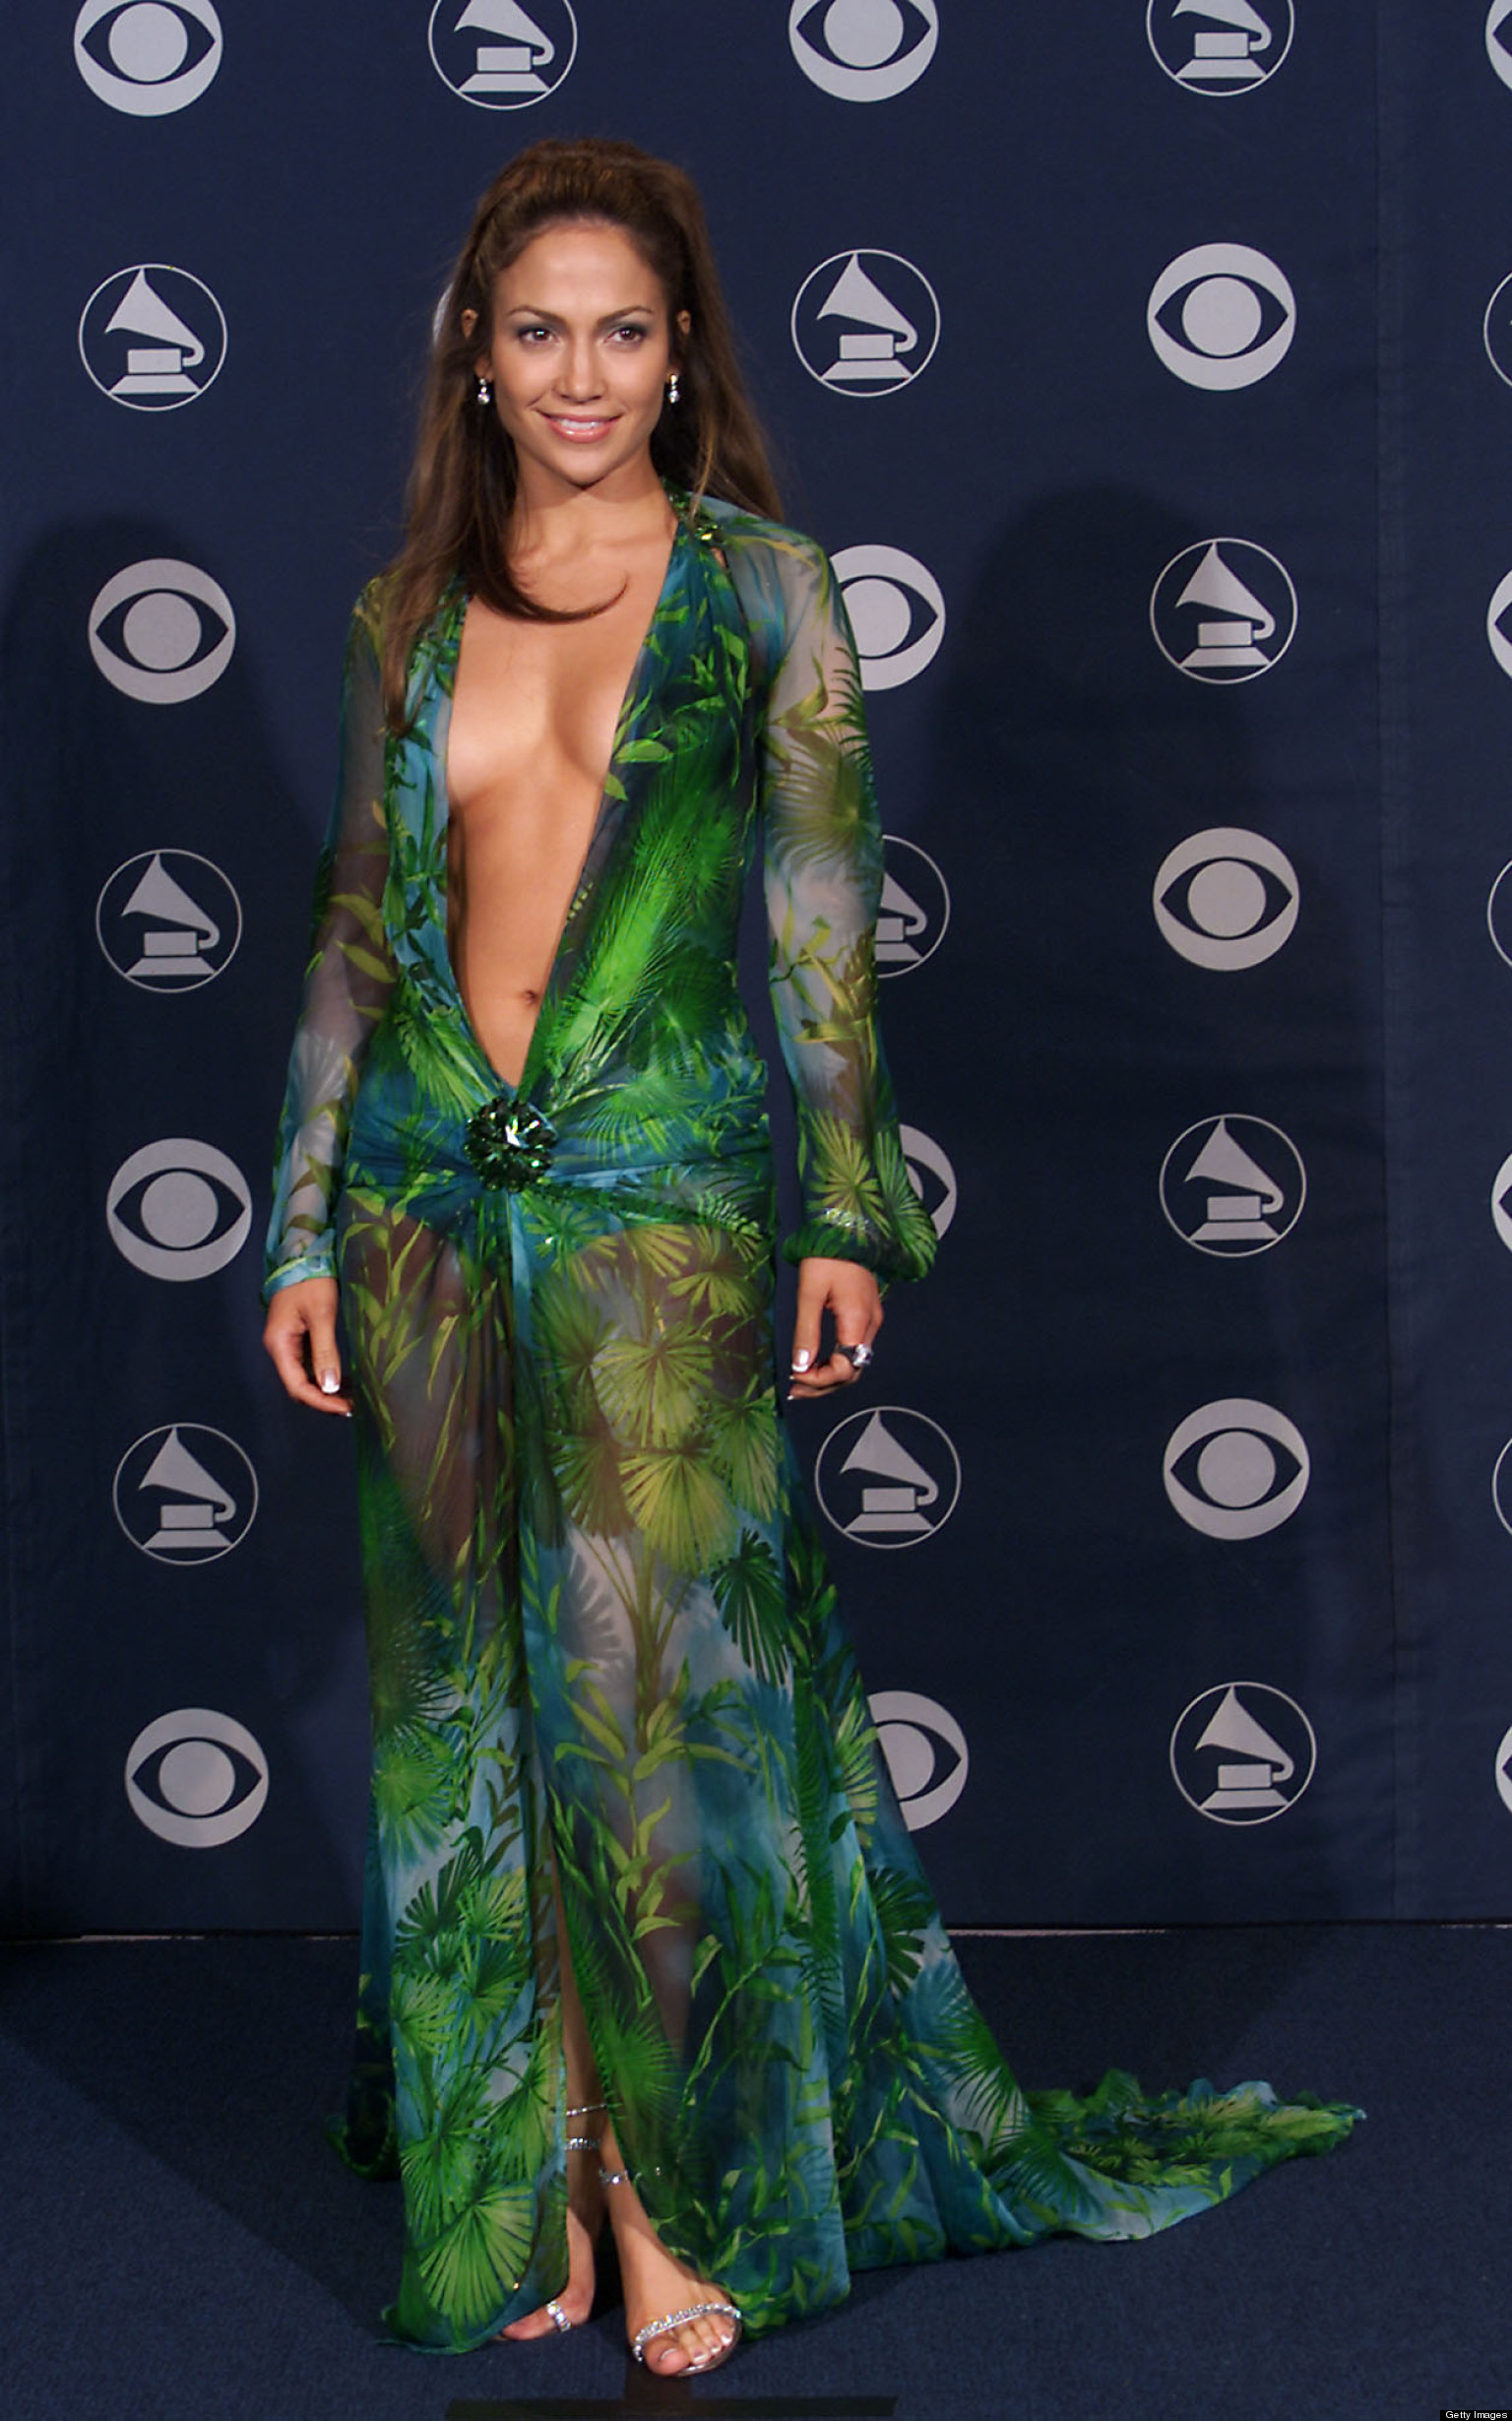 o-GRAMMYS-NUDITY-facebook.jpg